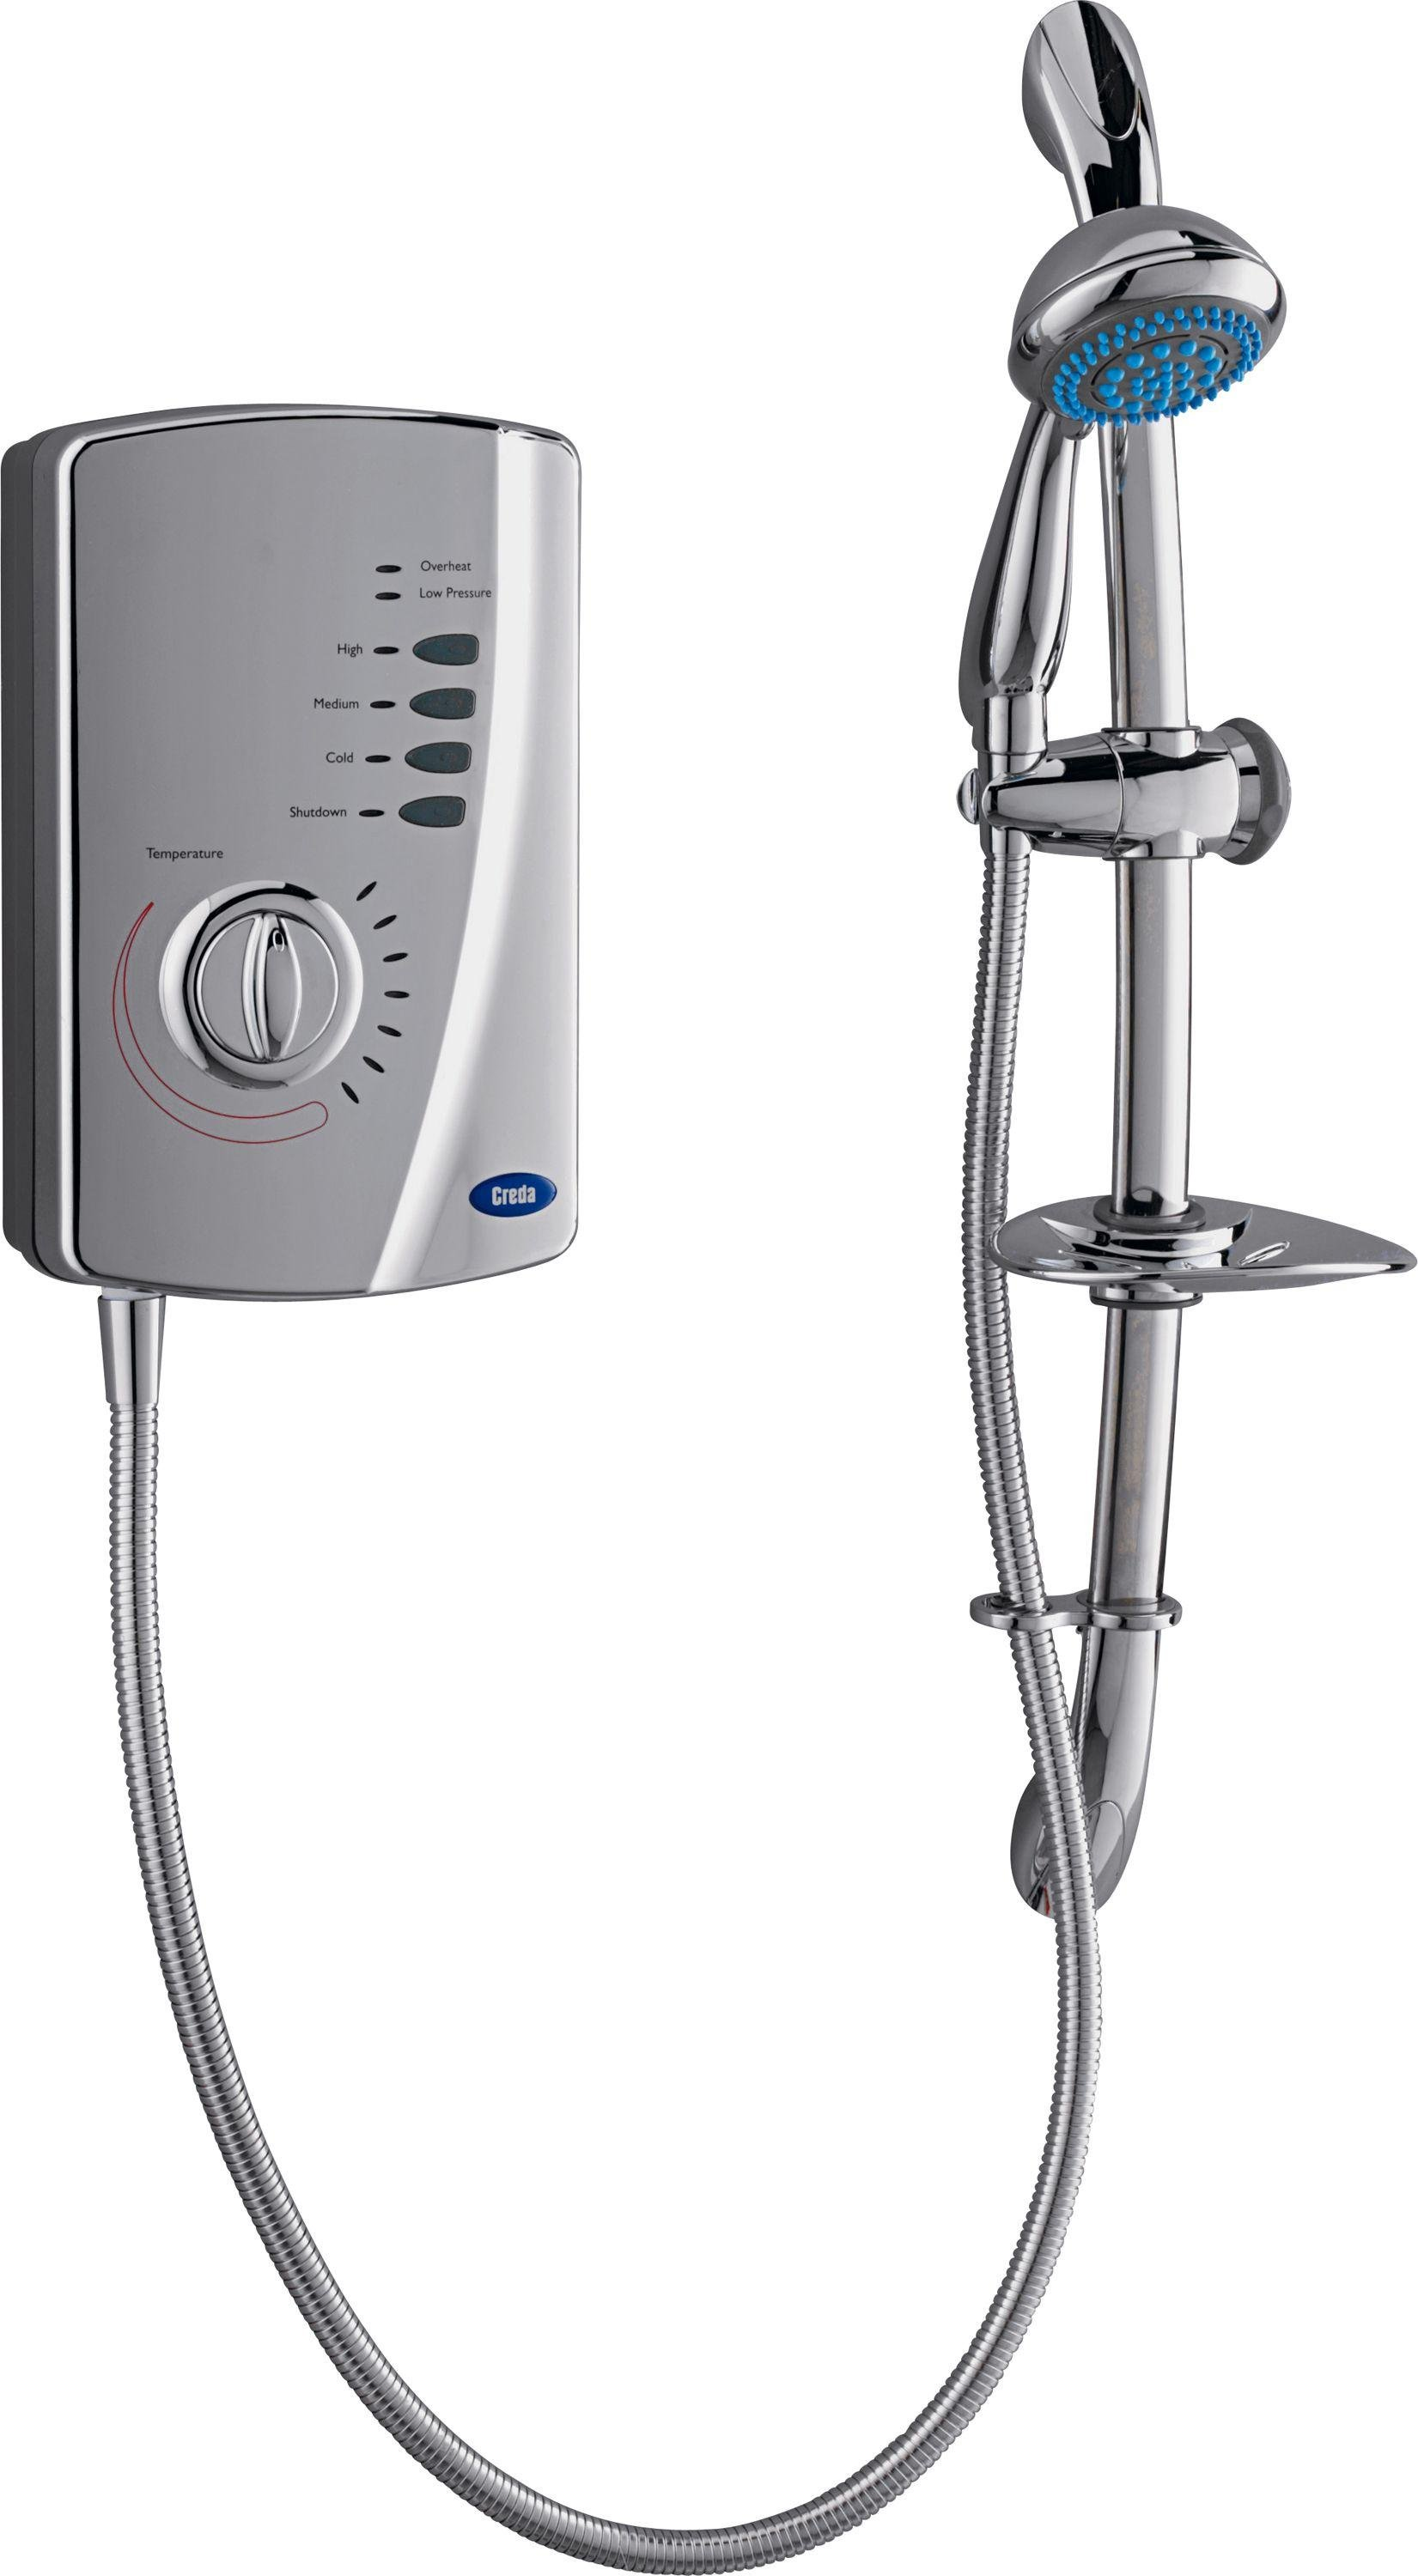 Image of Creda 550C 10.5kW Electric Shower - Silver Chrome